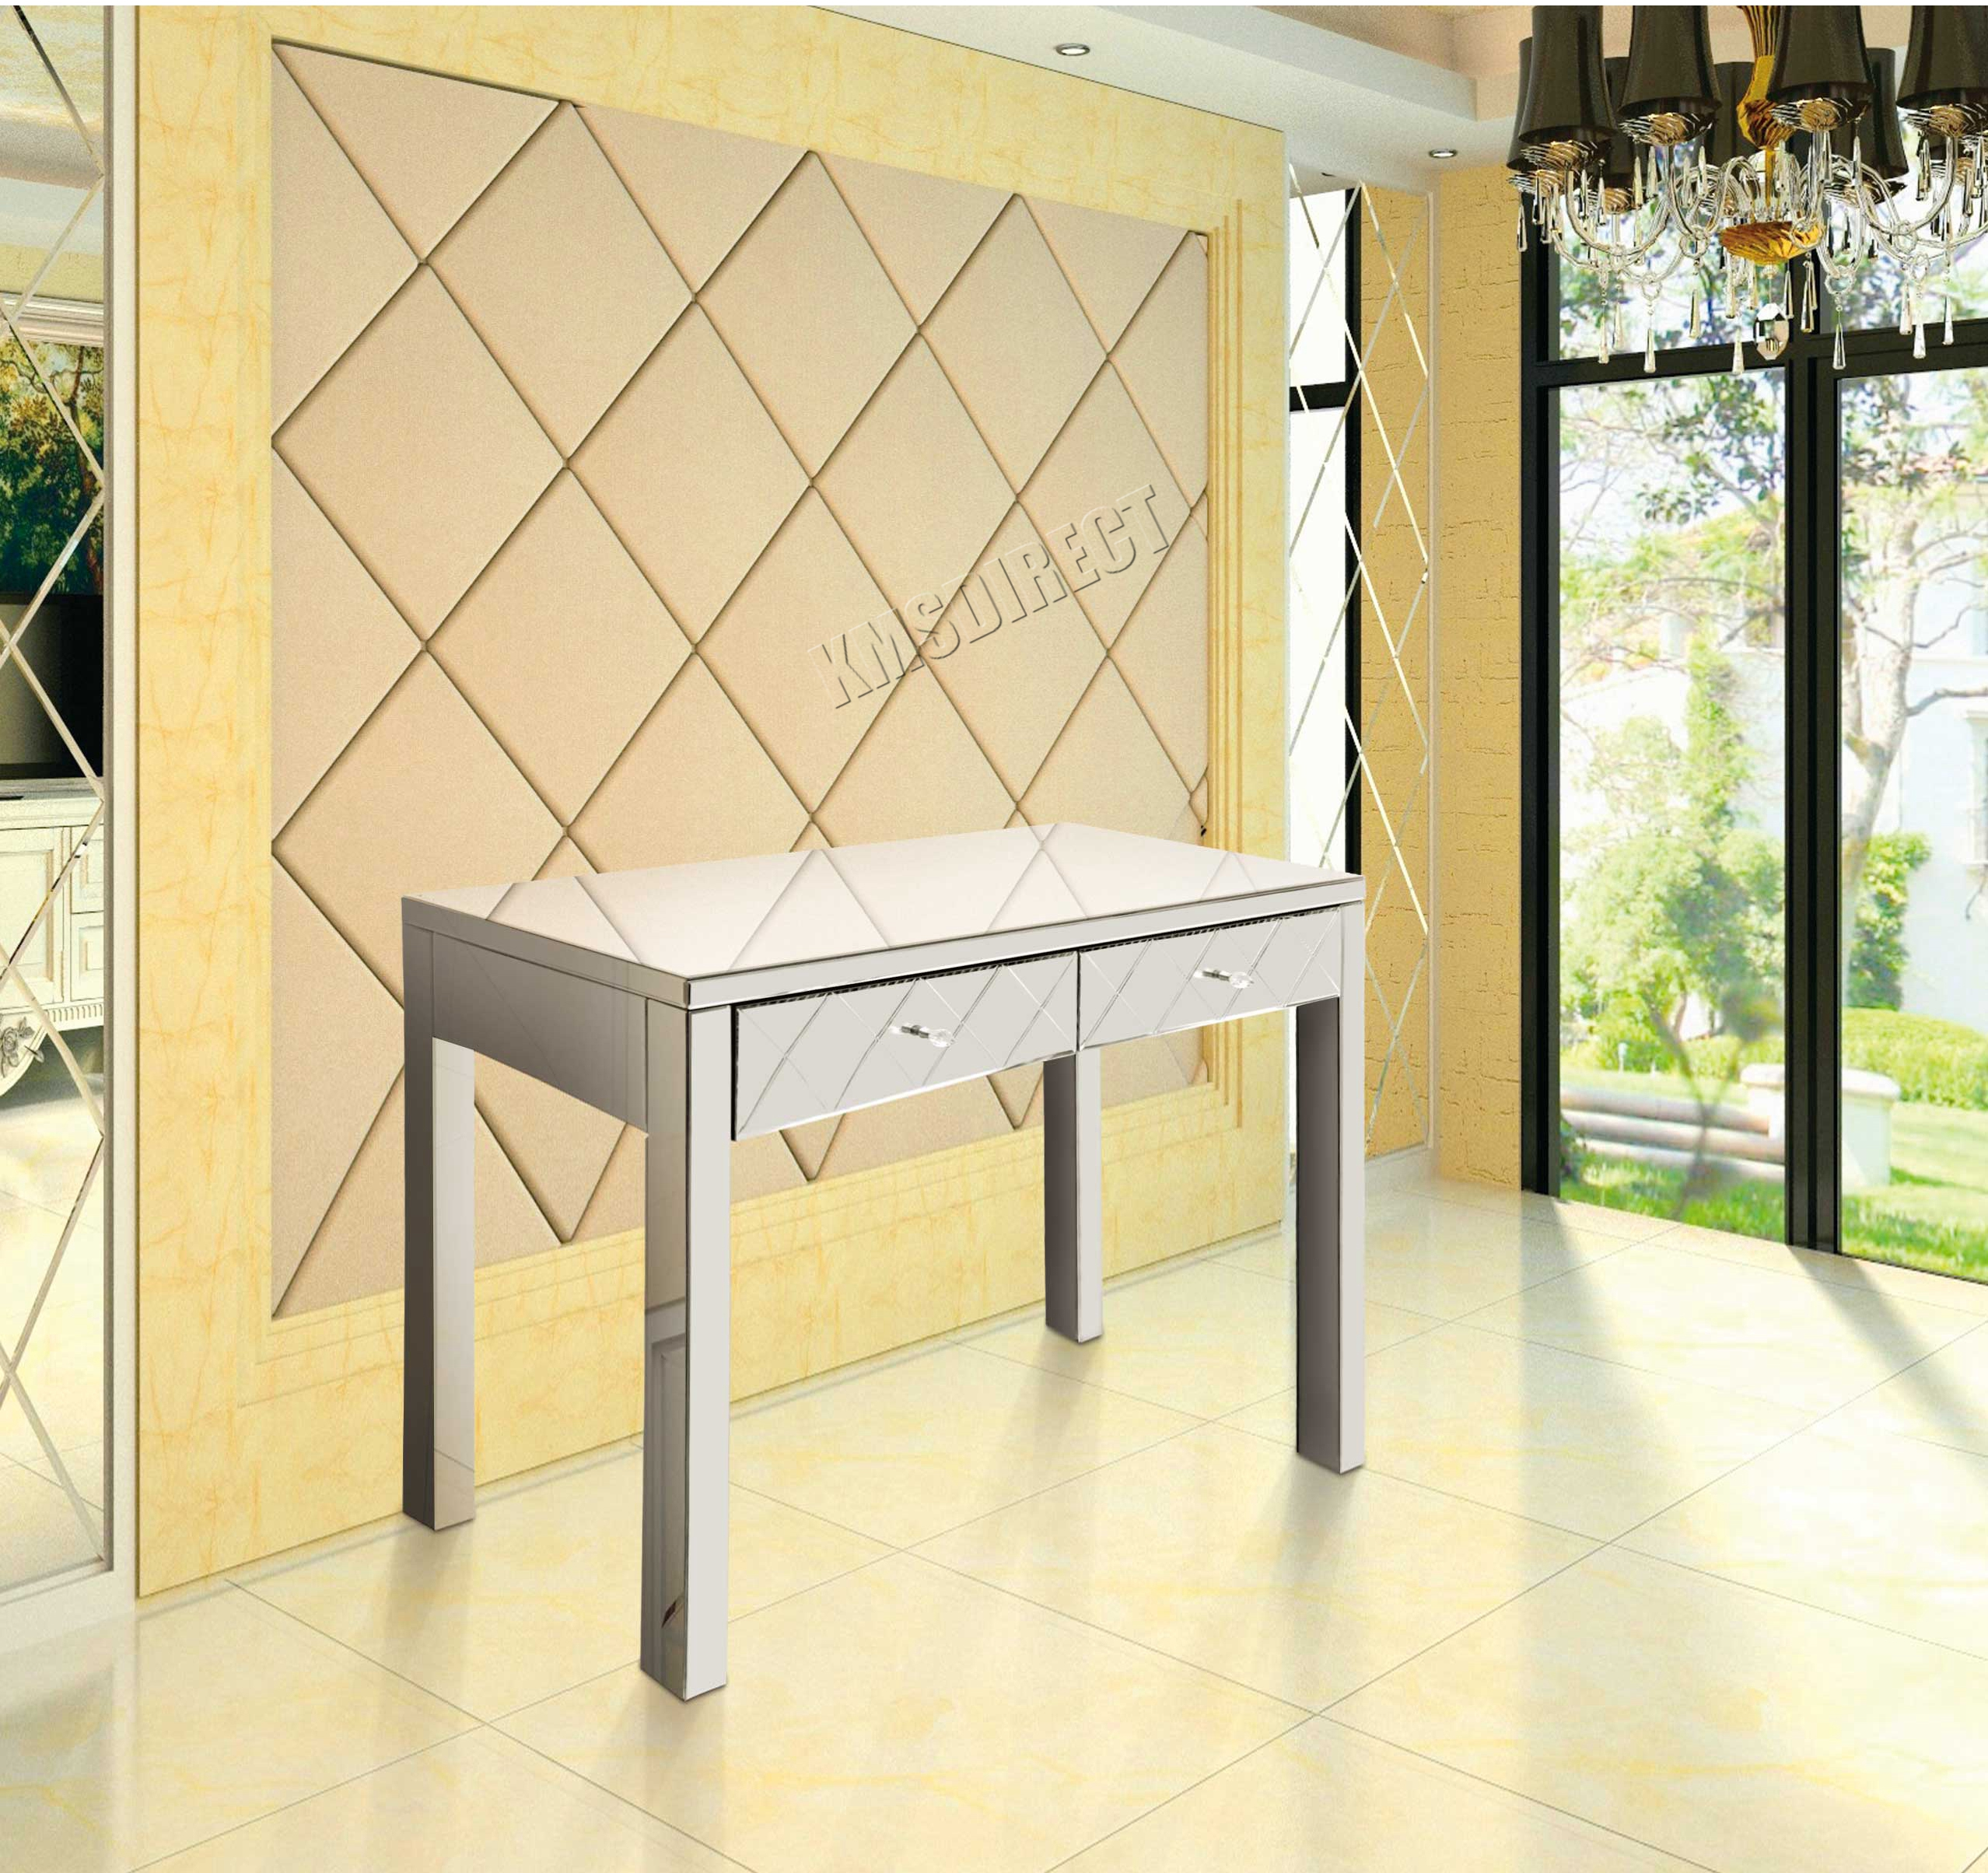 Glass dressing table - Sentinel Cosmetic Damaged Foxhunter Mirrored Furniture Glass 2 Drawer Dressing Table